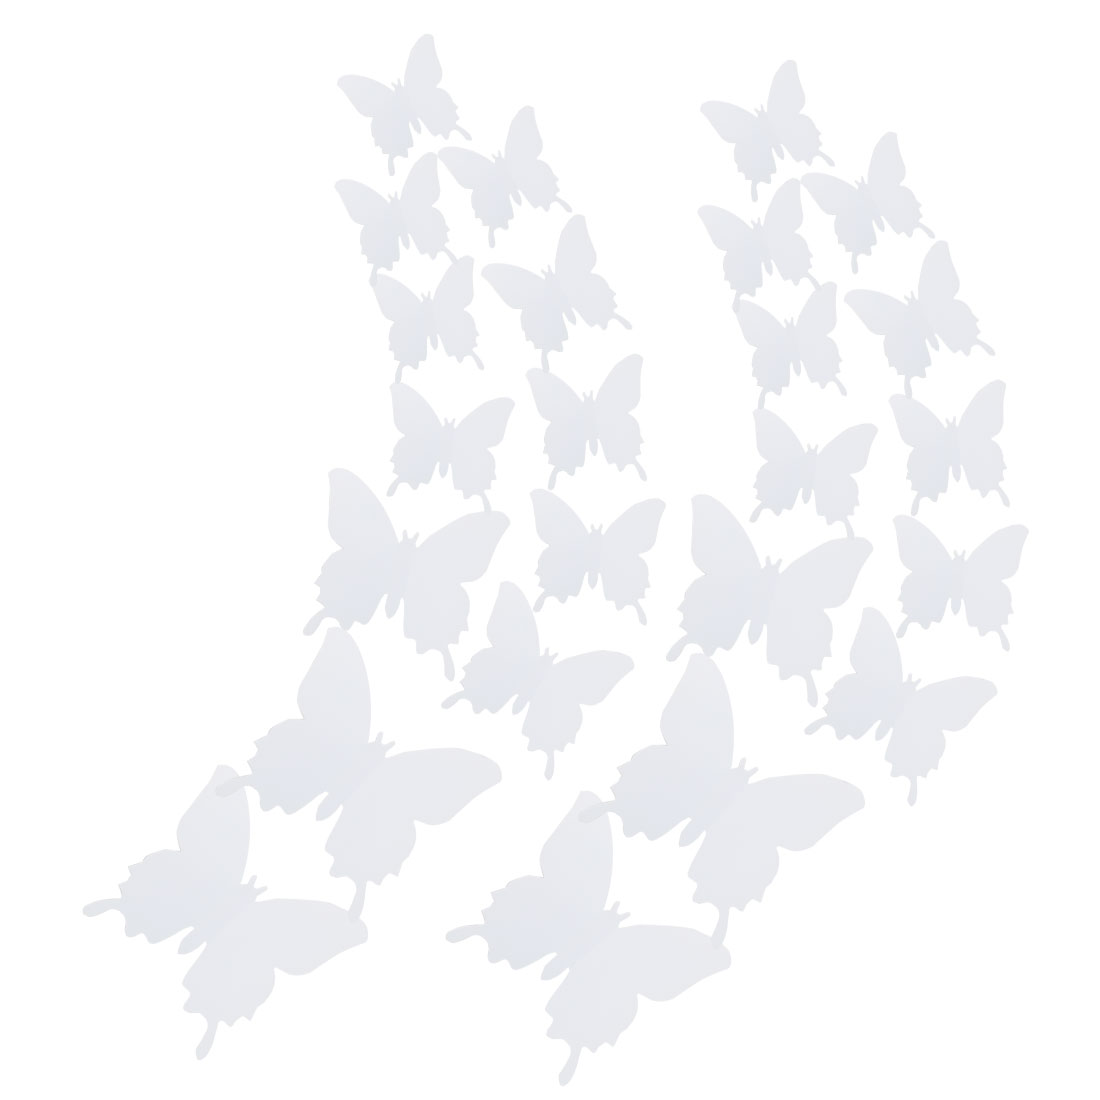 24pcs 3D Butterfly DIY Wall Sticker with Art Decals Sticker for Decor White